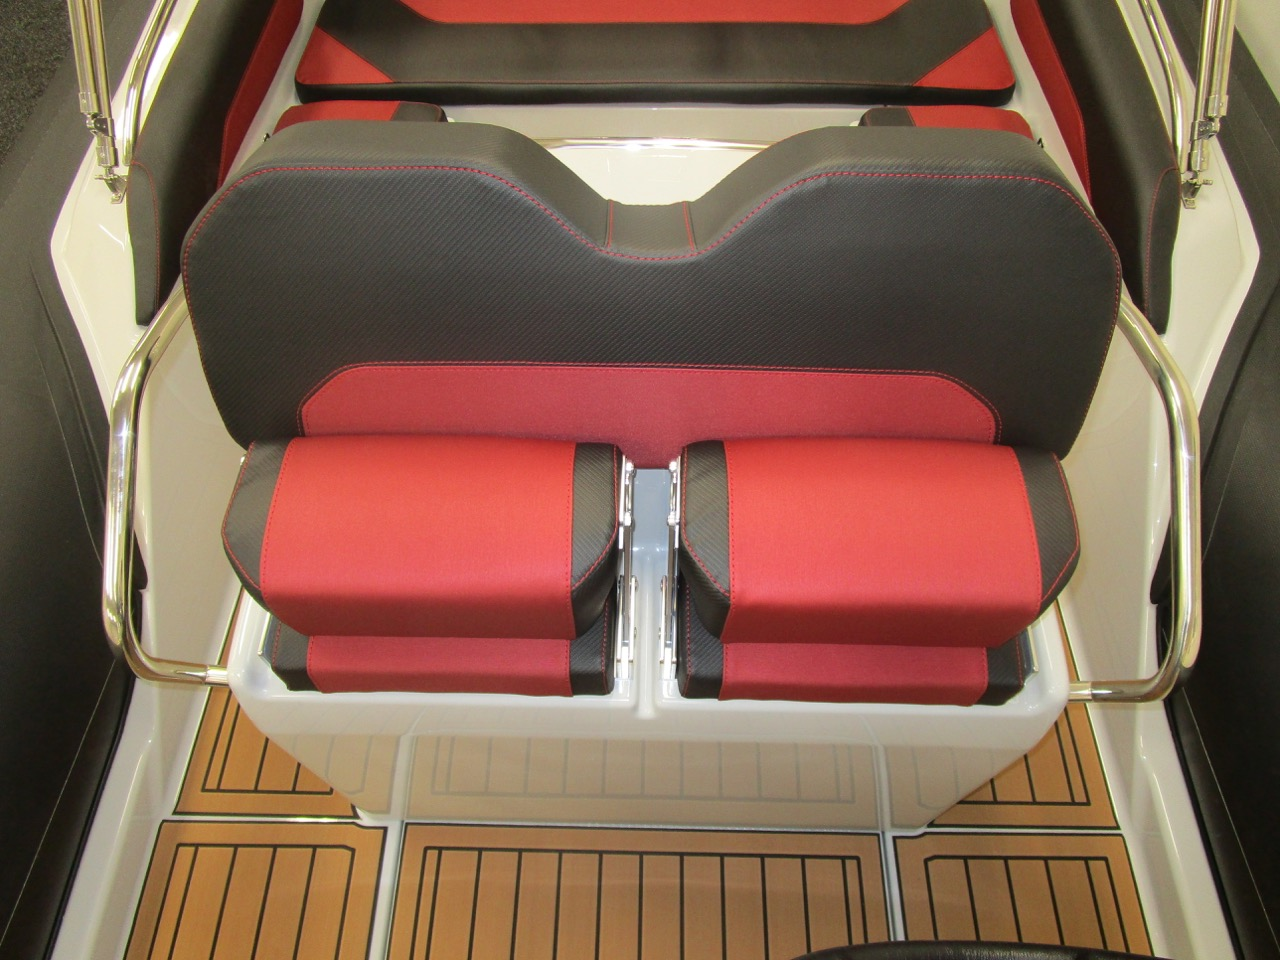 GRAND G750 RIB helm seats folded up